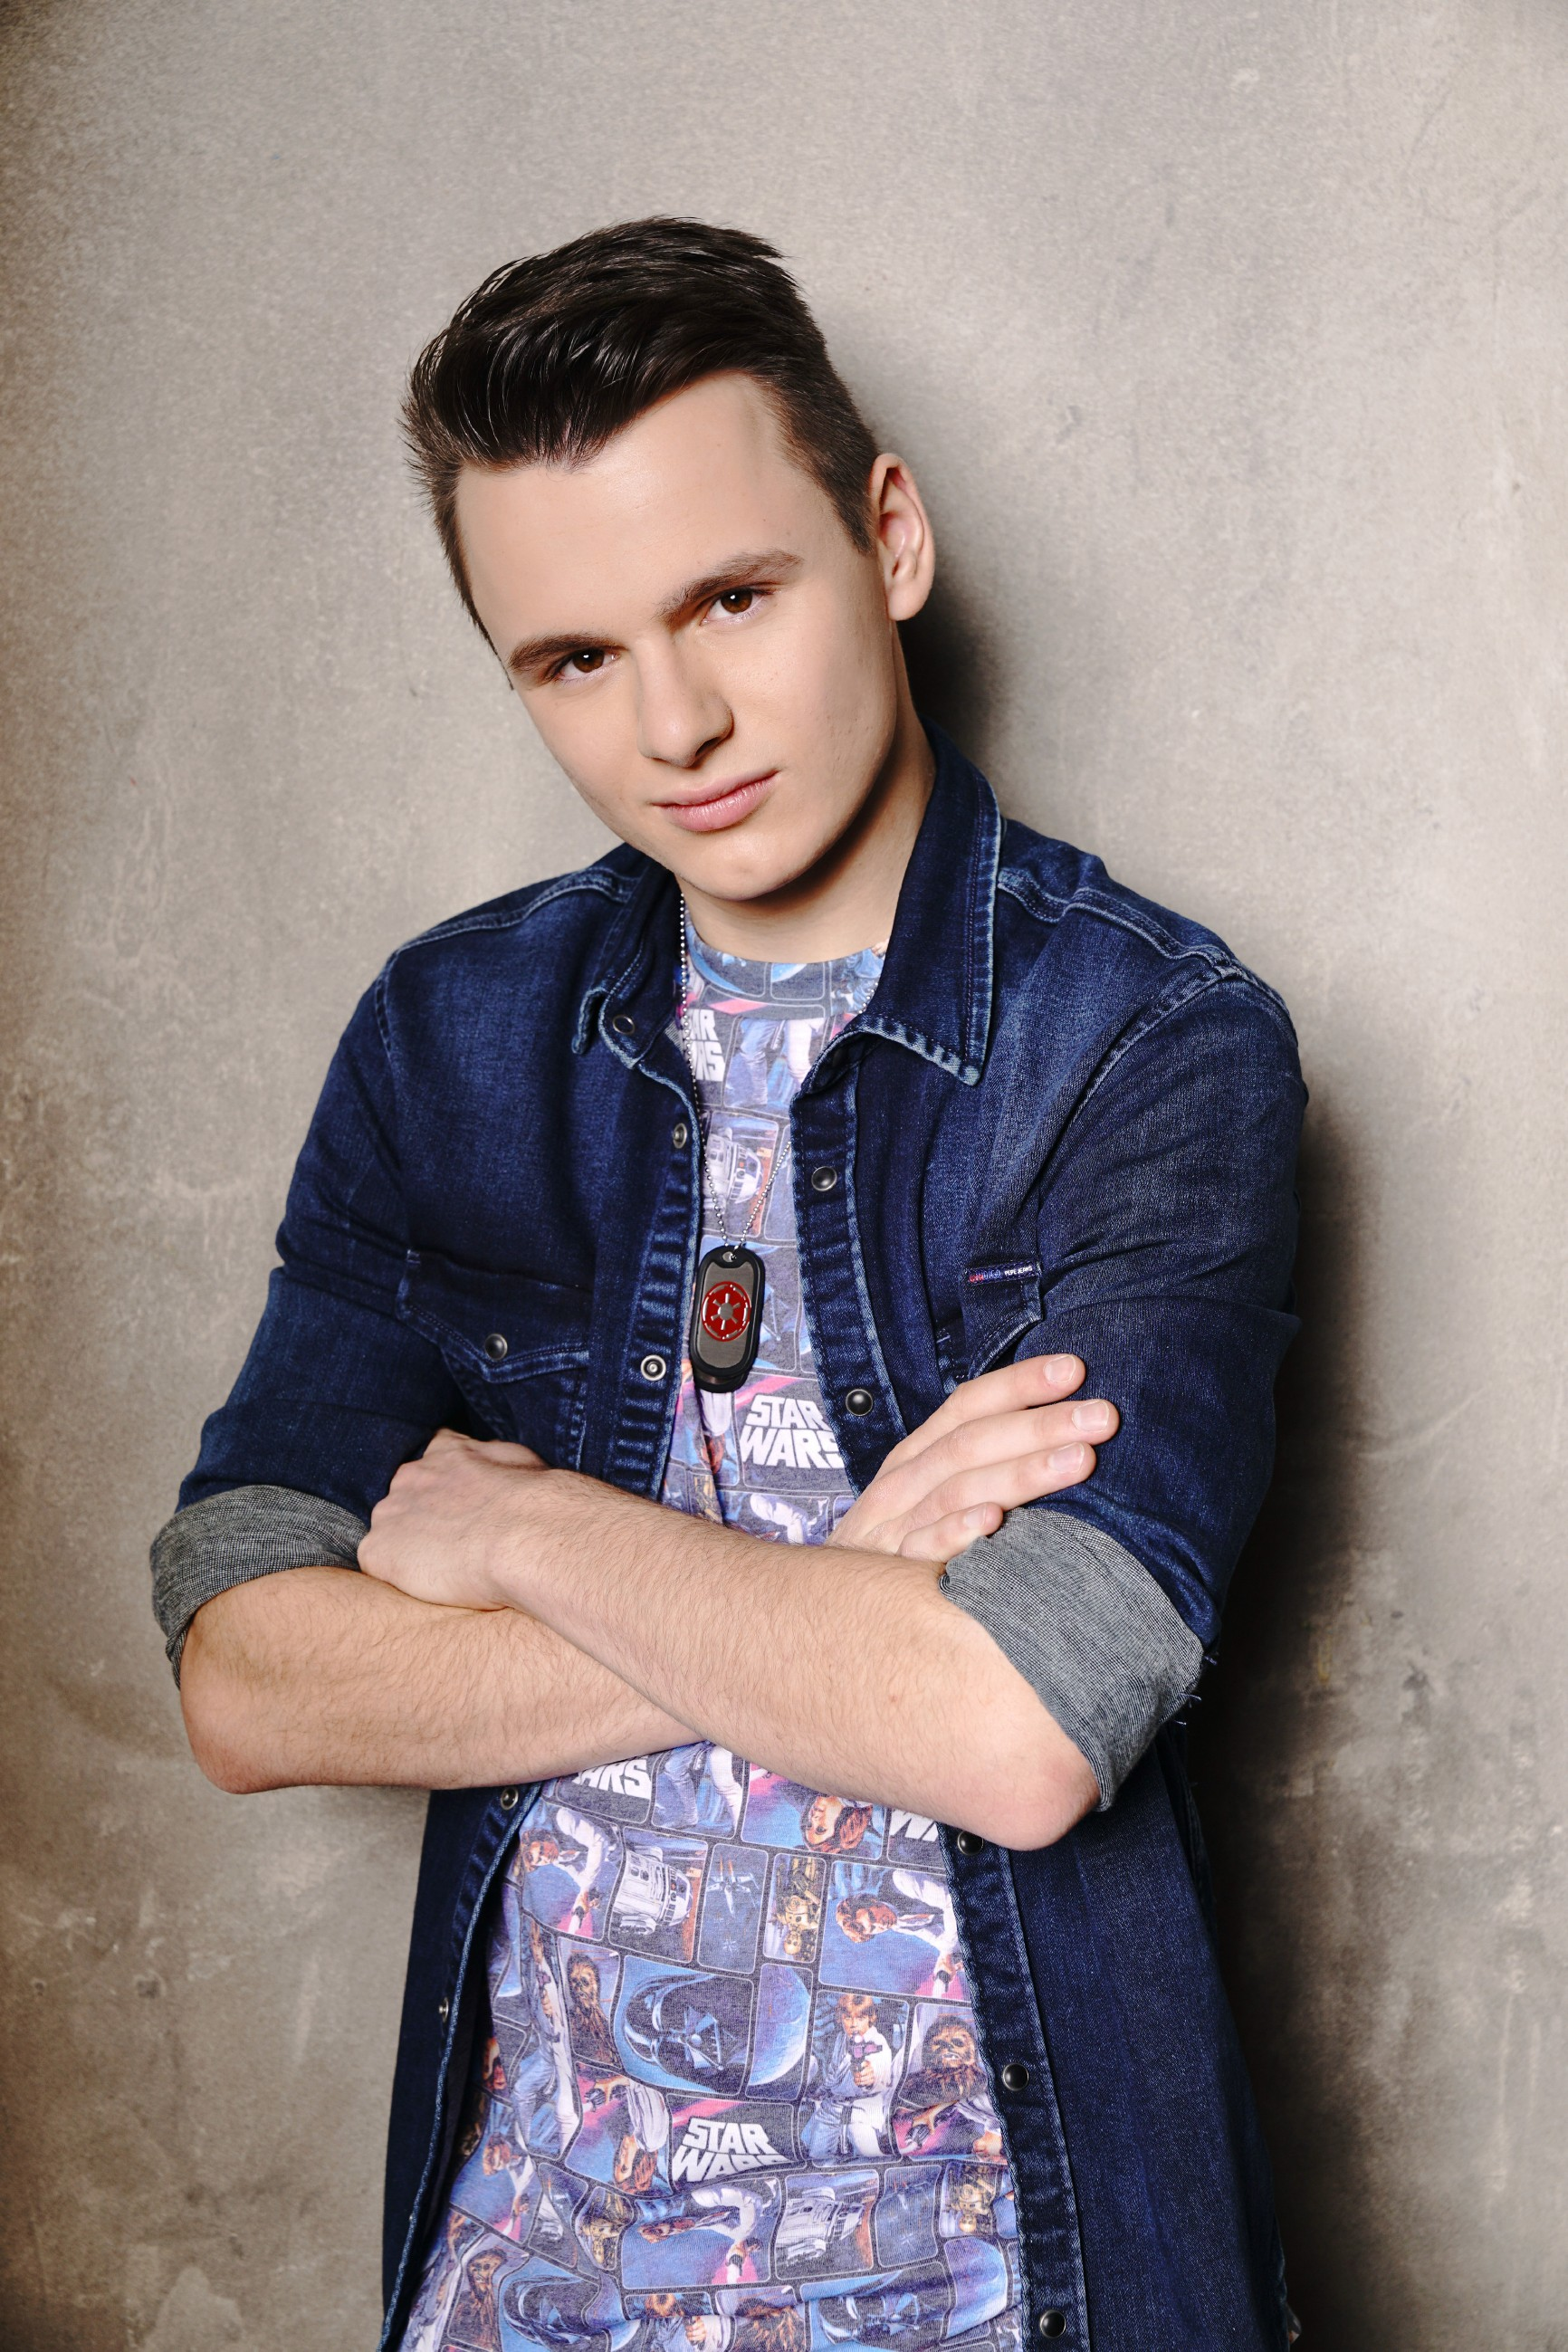 DSDS 2017 Top 13 - Sandro